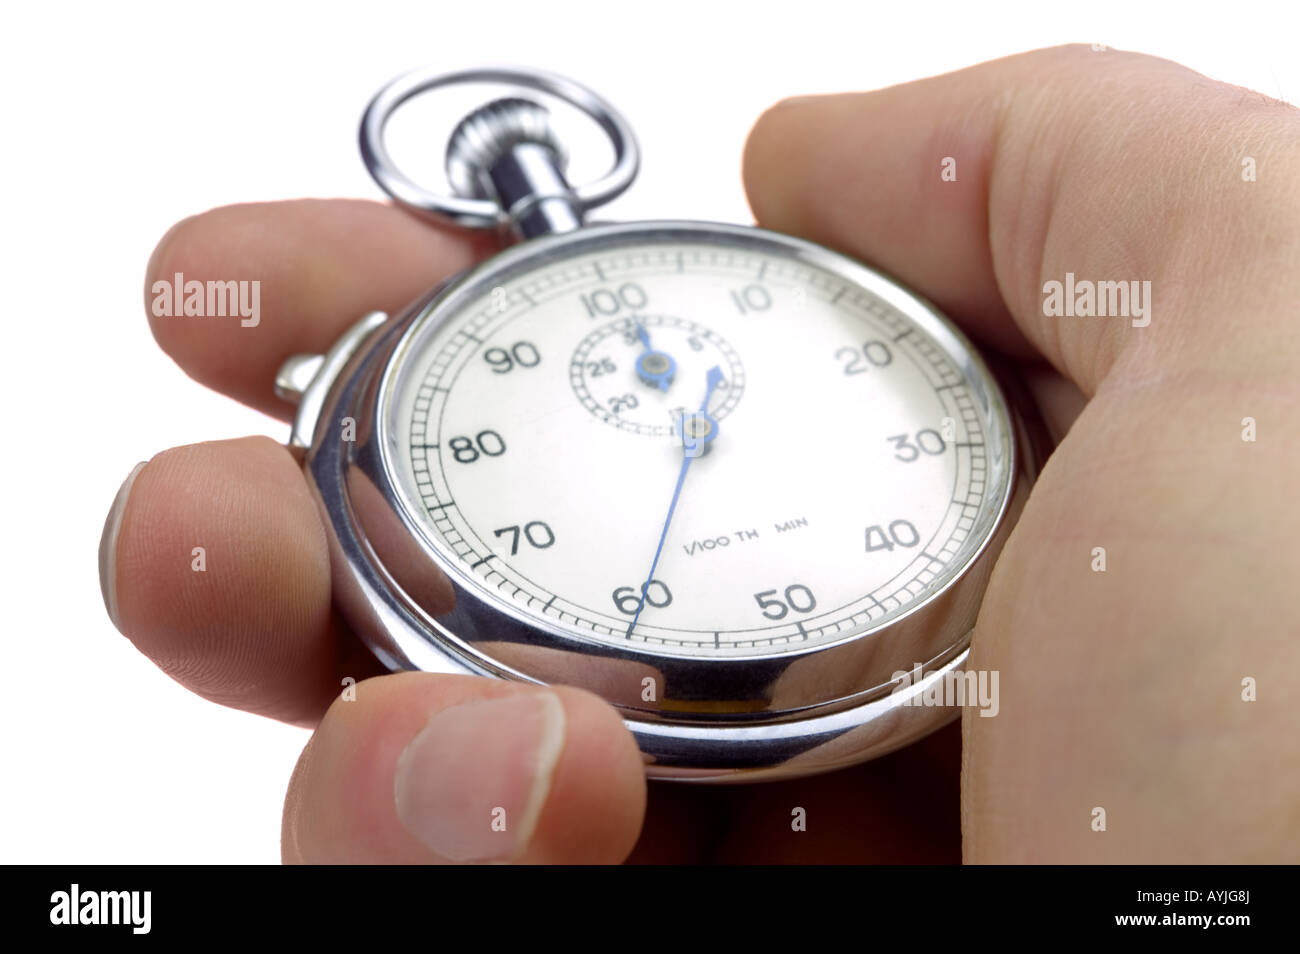 Close up of a hand holding a stopwatch thats stopped at 60/100th of a second Isolated on a white background - Stock Image